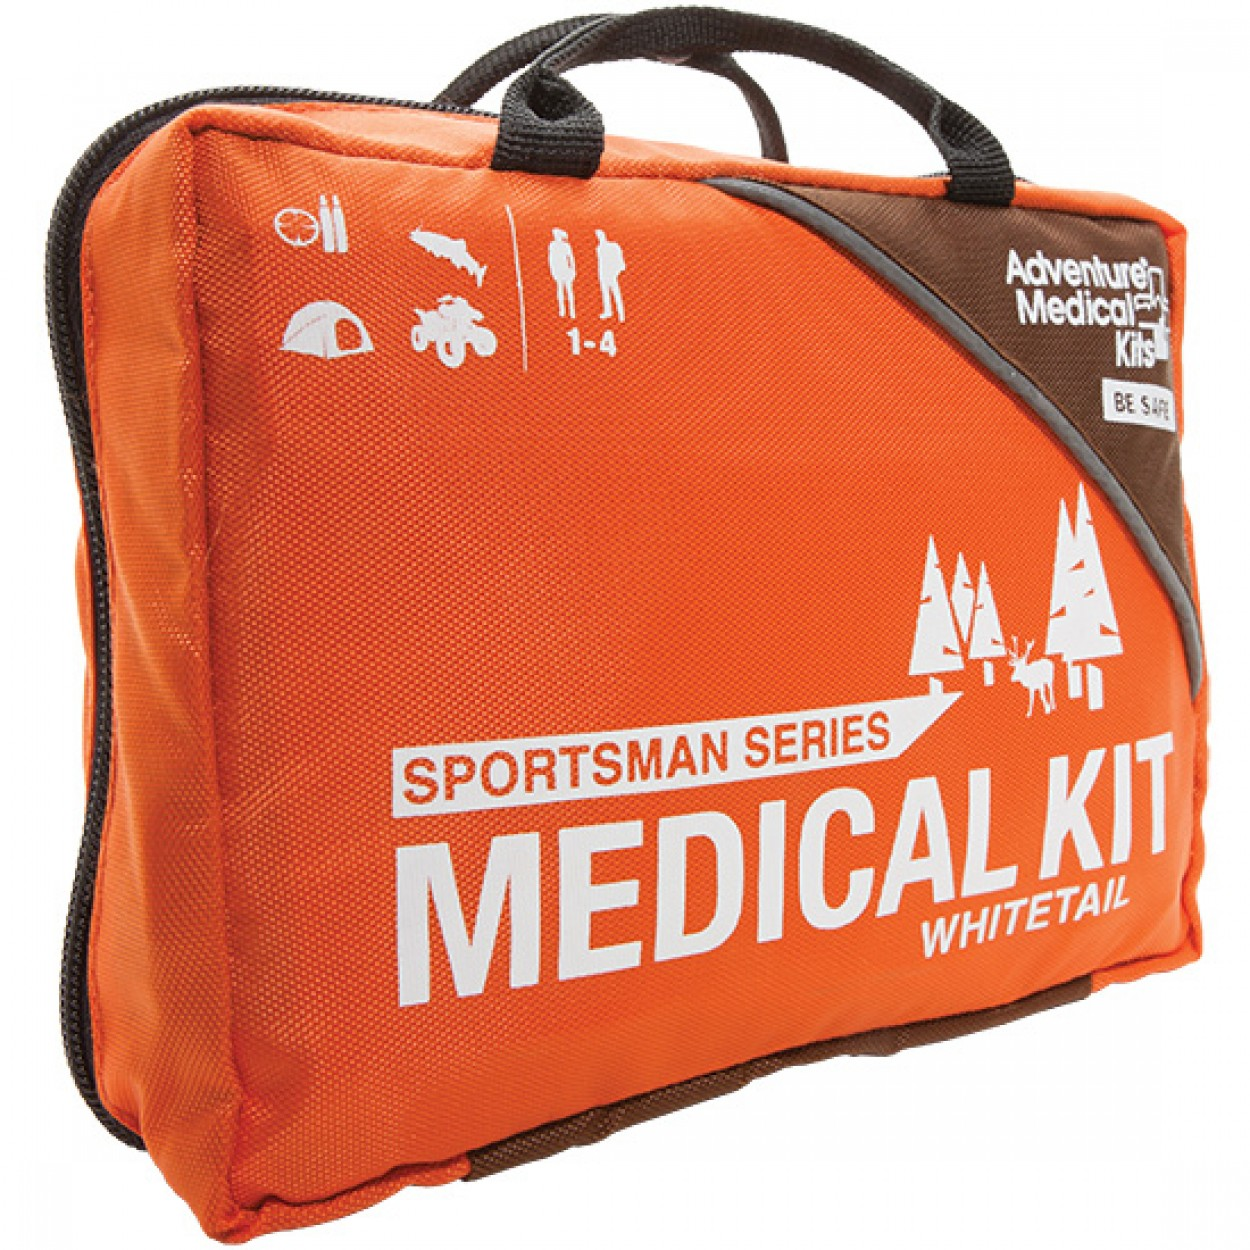 Sportsman Series Medical Kit